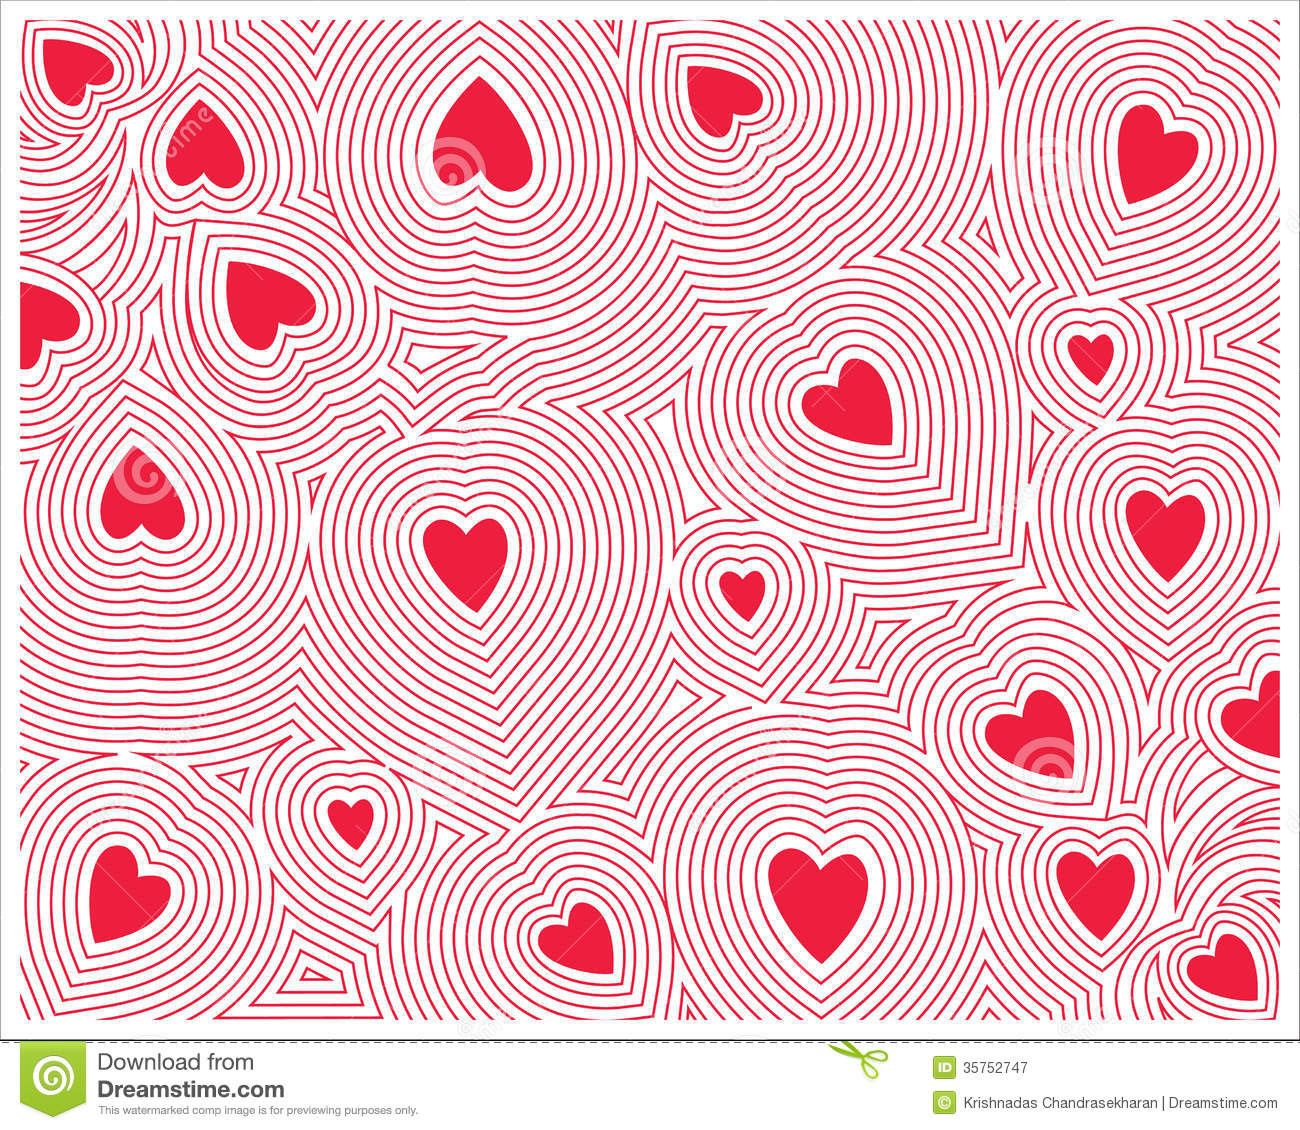 Red Heart Patterns Elegant Red Heart Seamless Royalty Free Stock Graphy Image Of Contemporary 46 Ideas Red Heart Patterns